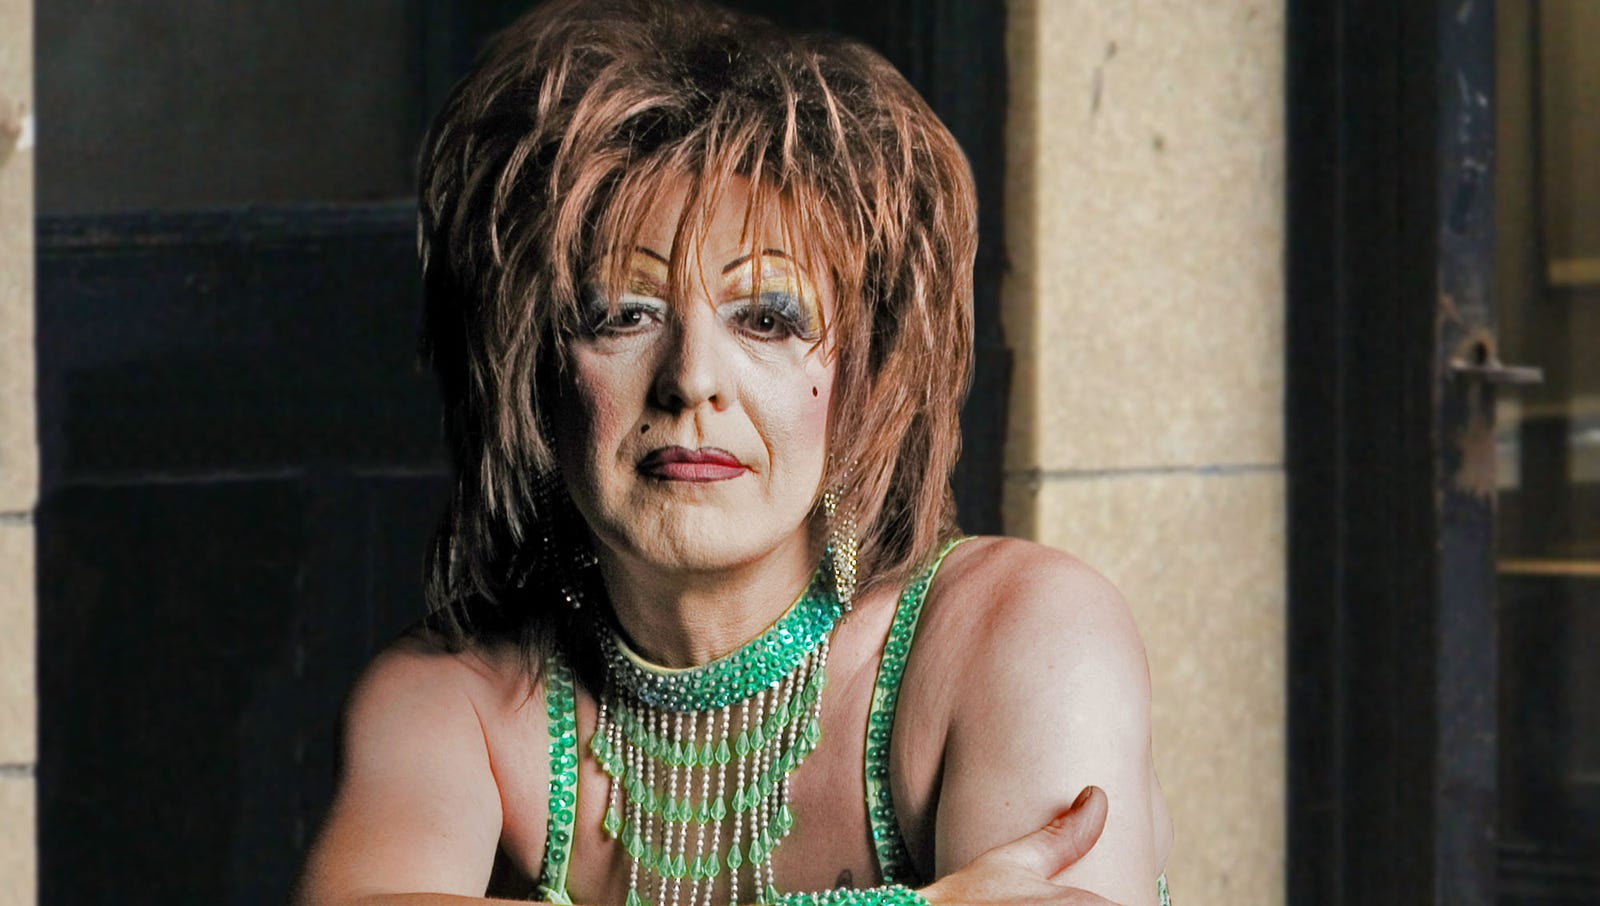 Today Particularly Rough Day For East Village Junkie Transvestite